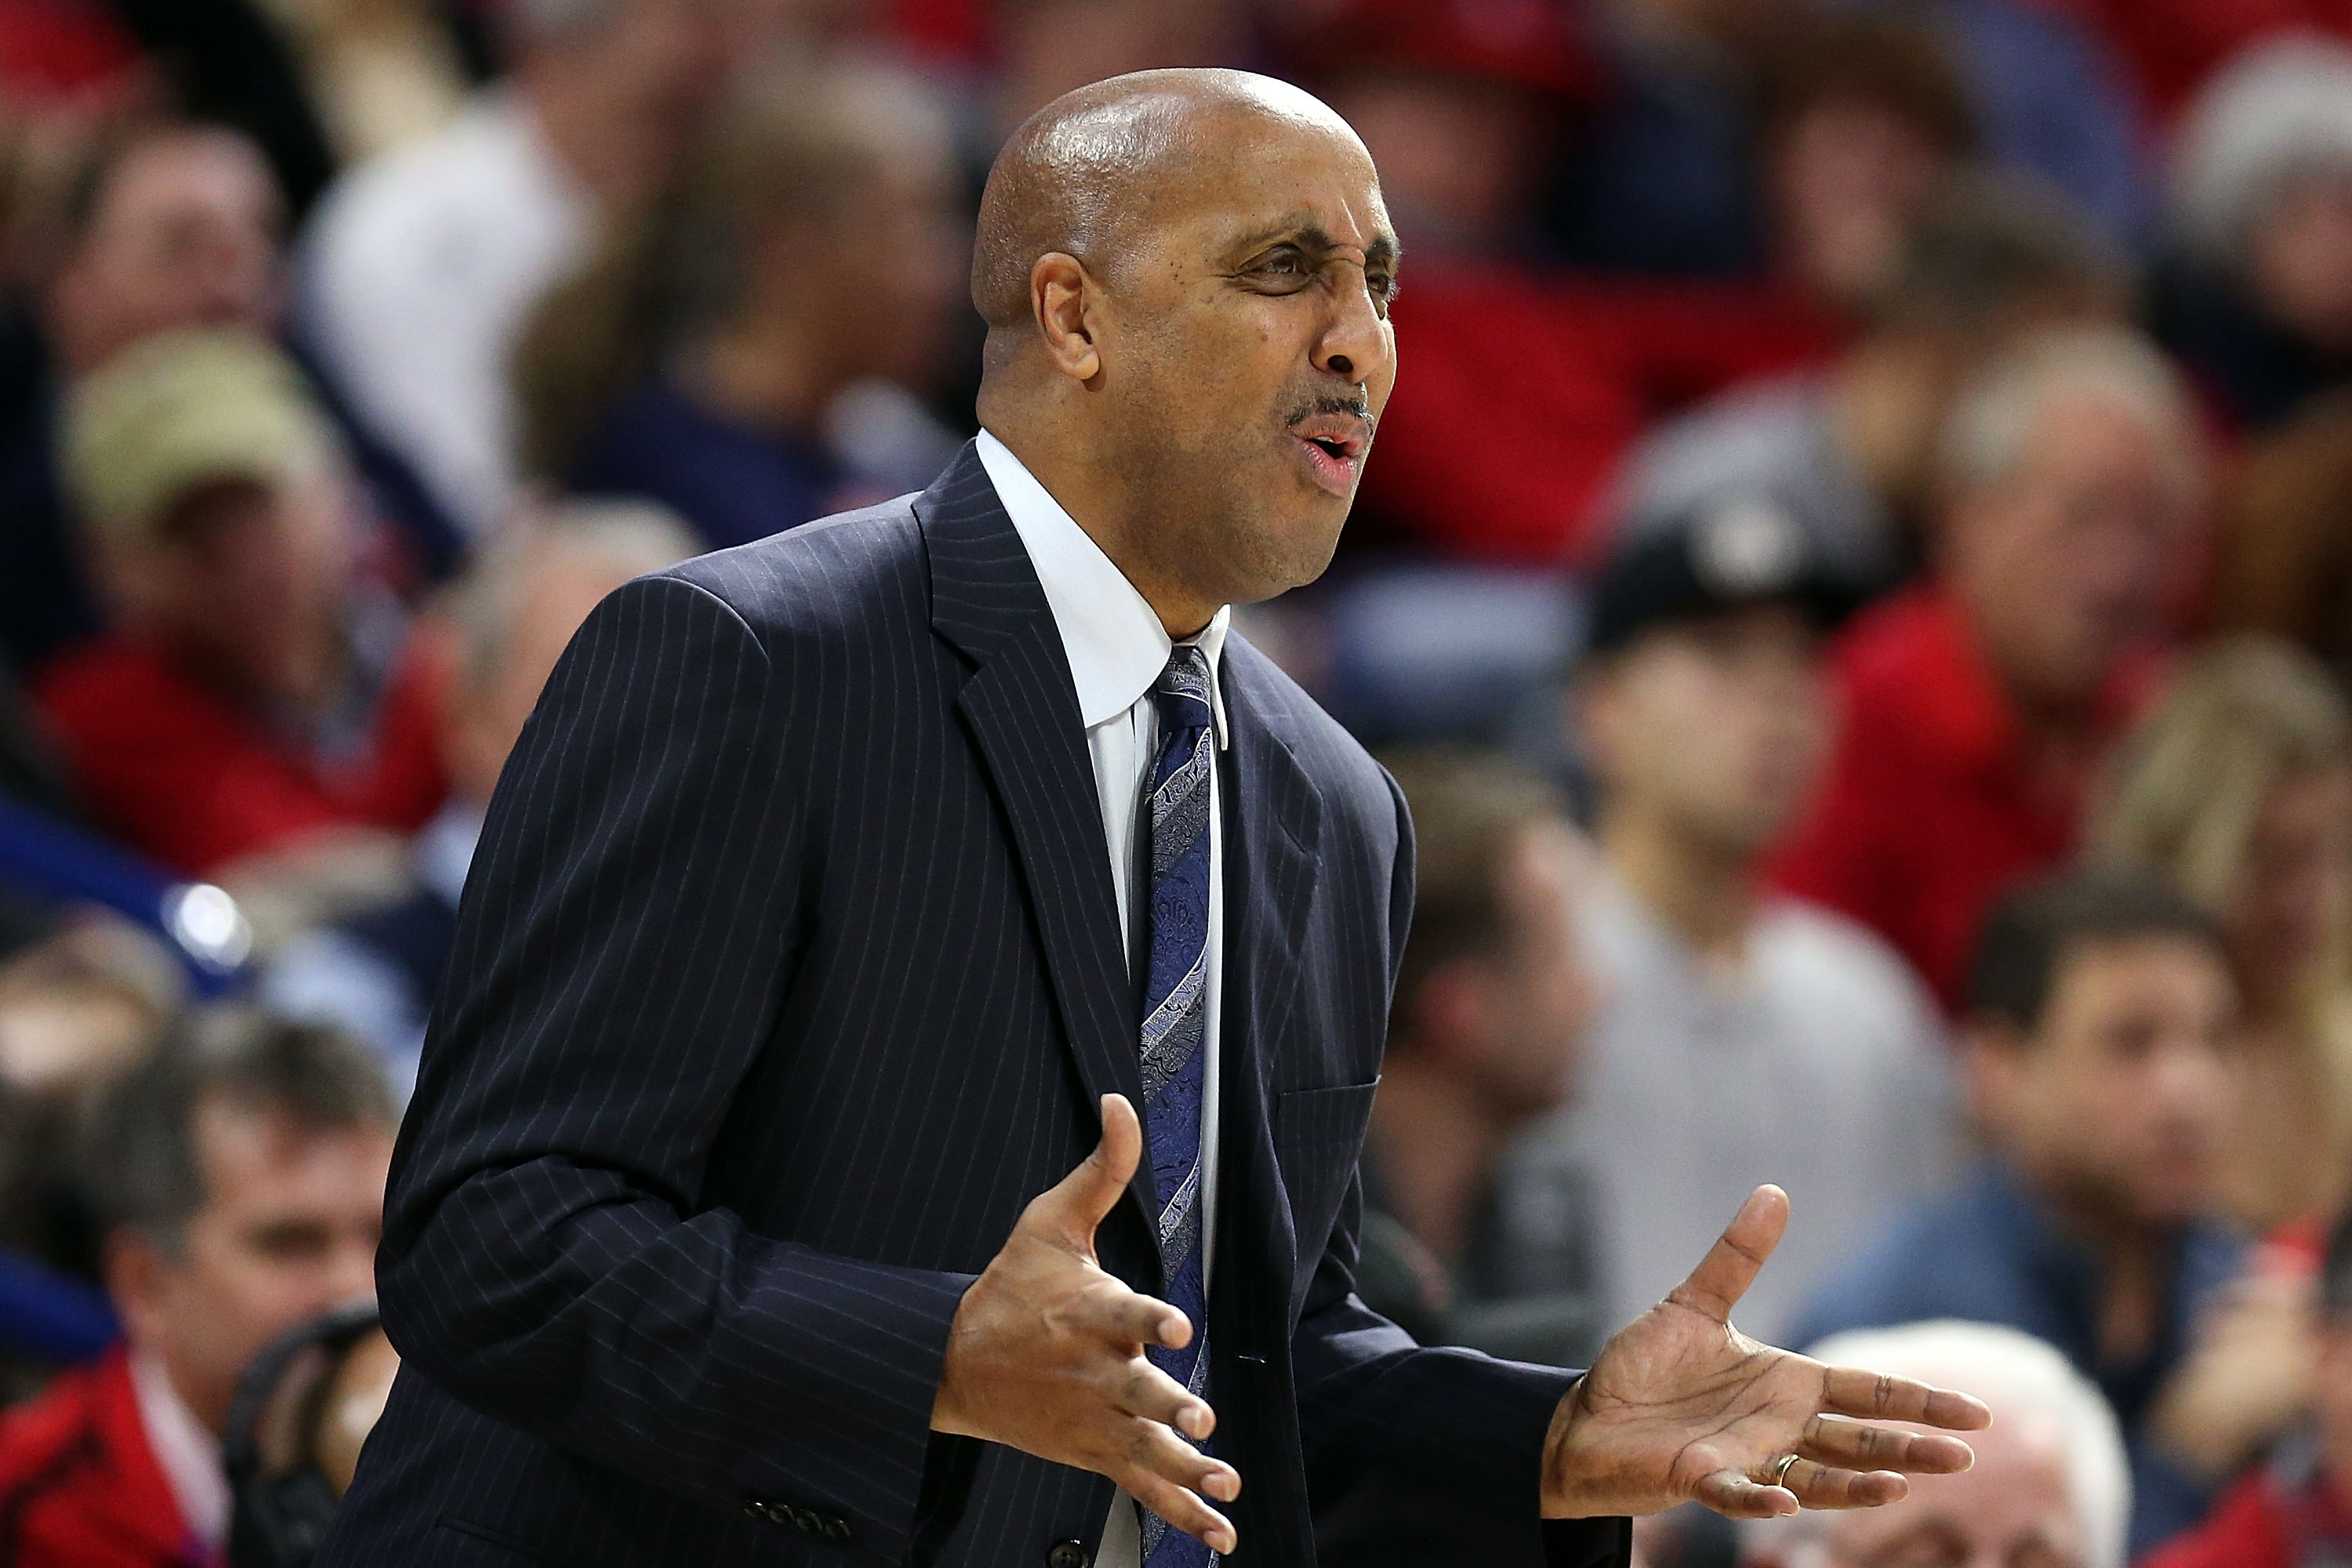 TUCSON, AZ - JANUARY 14: Head coach Lorenzo Romar of the Washington Huskies gestures during the first half of the college basketball game at McKale Center on January 14, 2016 in Tucson, Arizona. The Arizona Wildcats beat the Washington Huskies 99-67. (Photo by Chris Coduto/Getty Images)